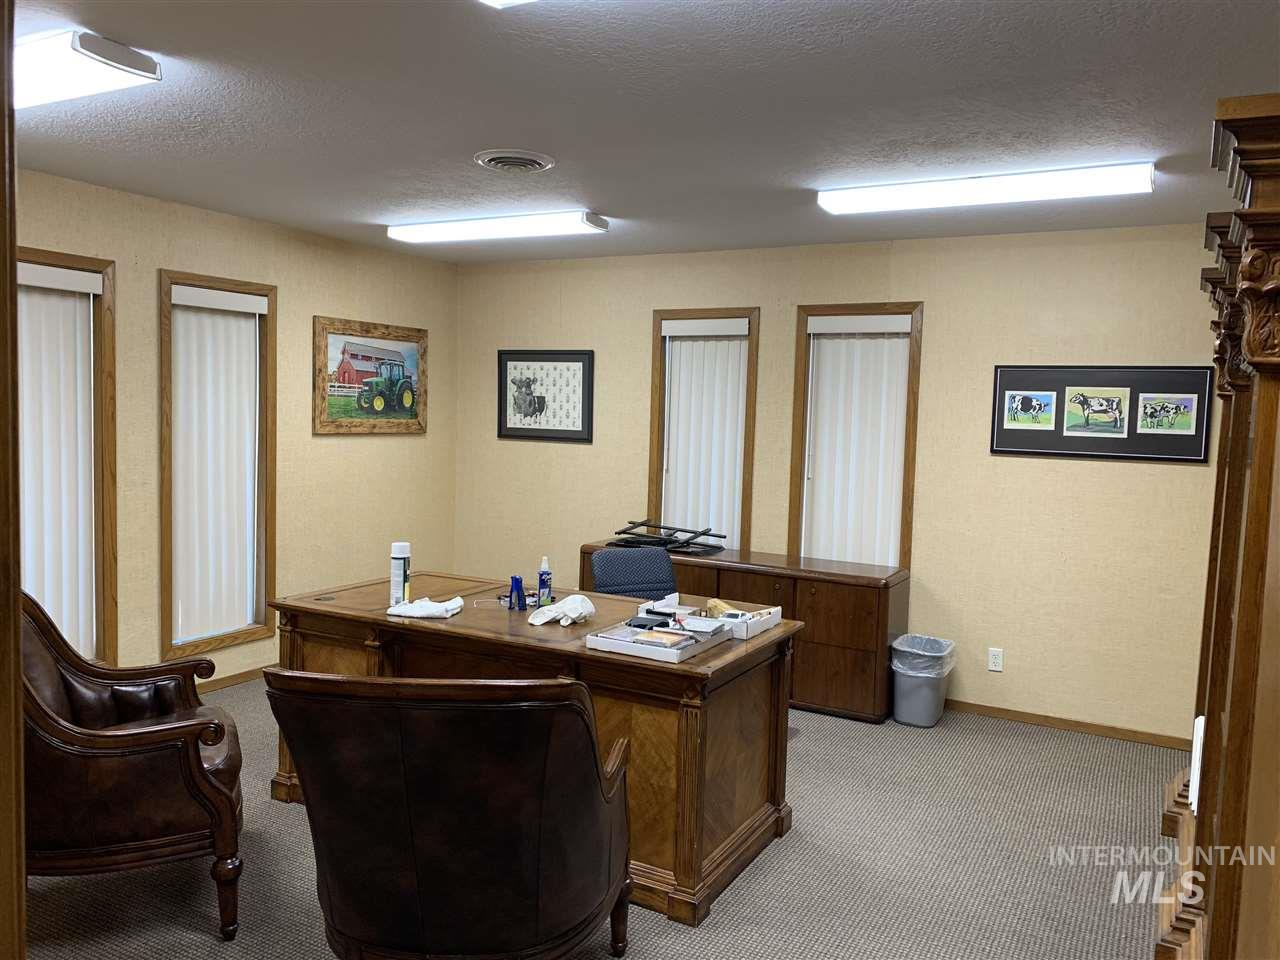 401 Brockman Loop, Jerome, Idaho 83338, Business/Commercial For Sale, Price $699,000, 98725285